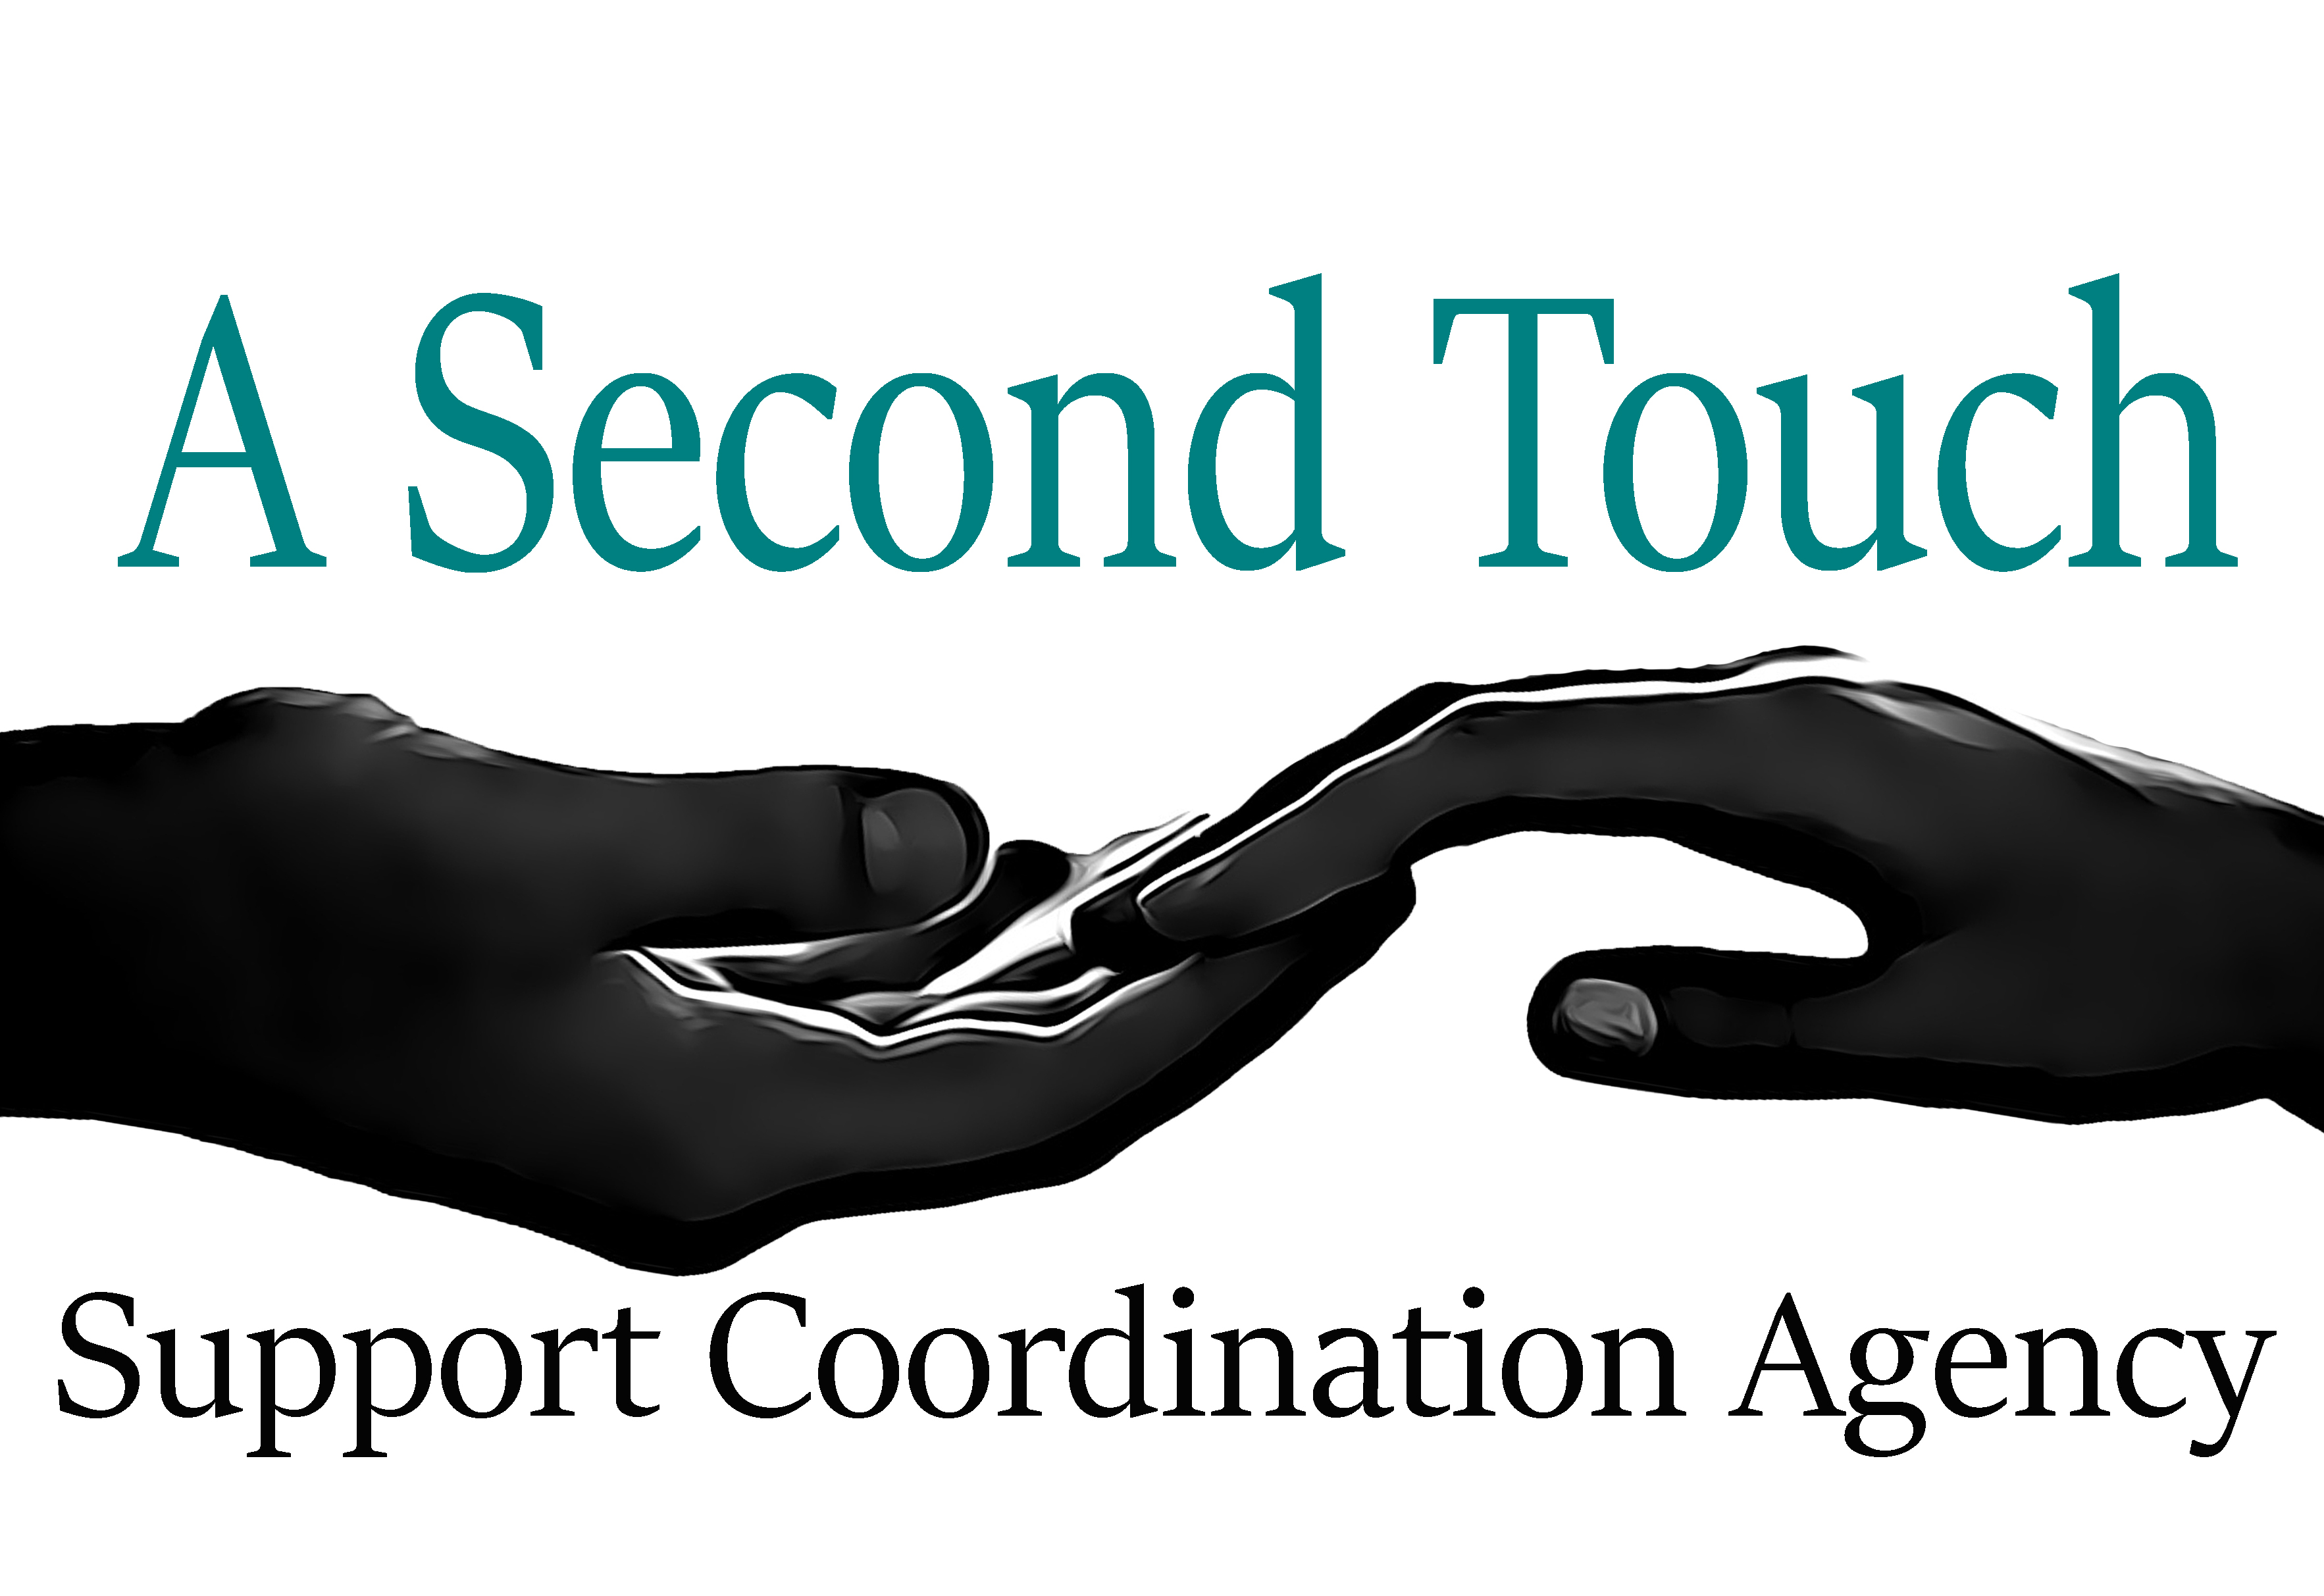 A Second Touch